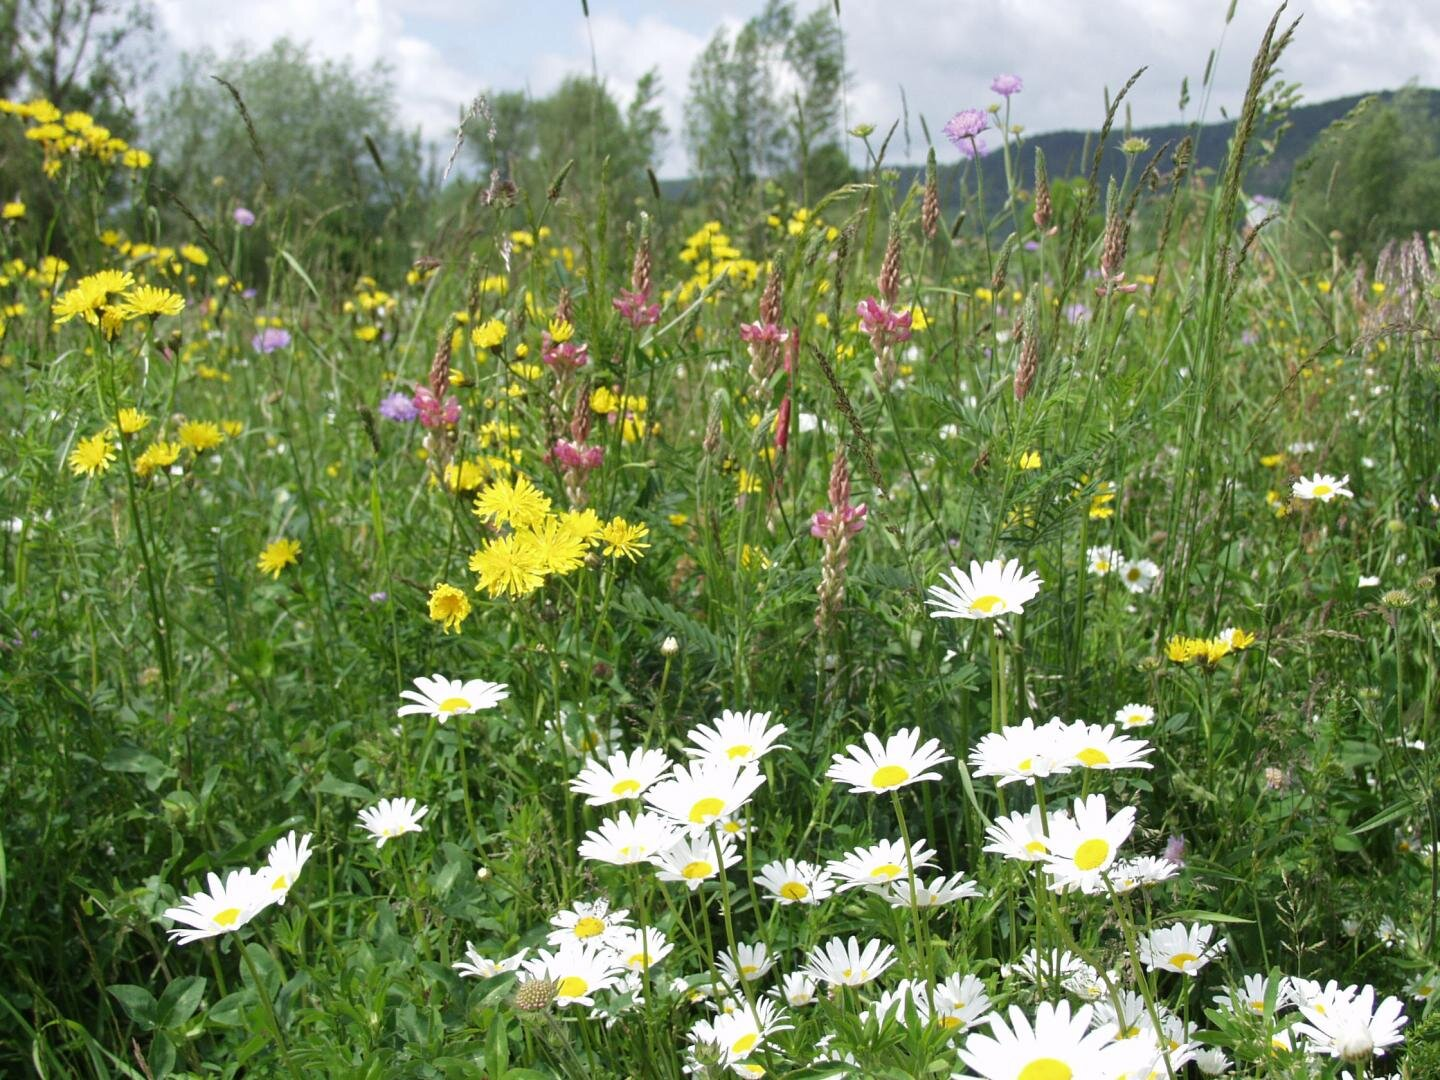 Biodiversity increases the efficiency of energy use in grasslands